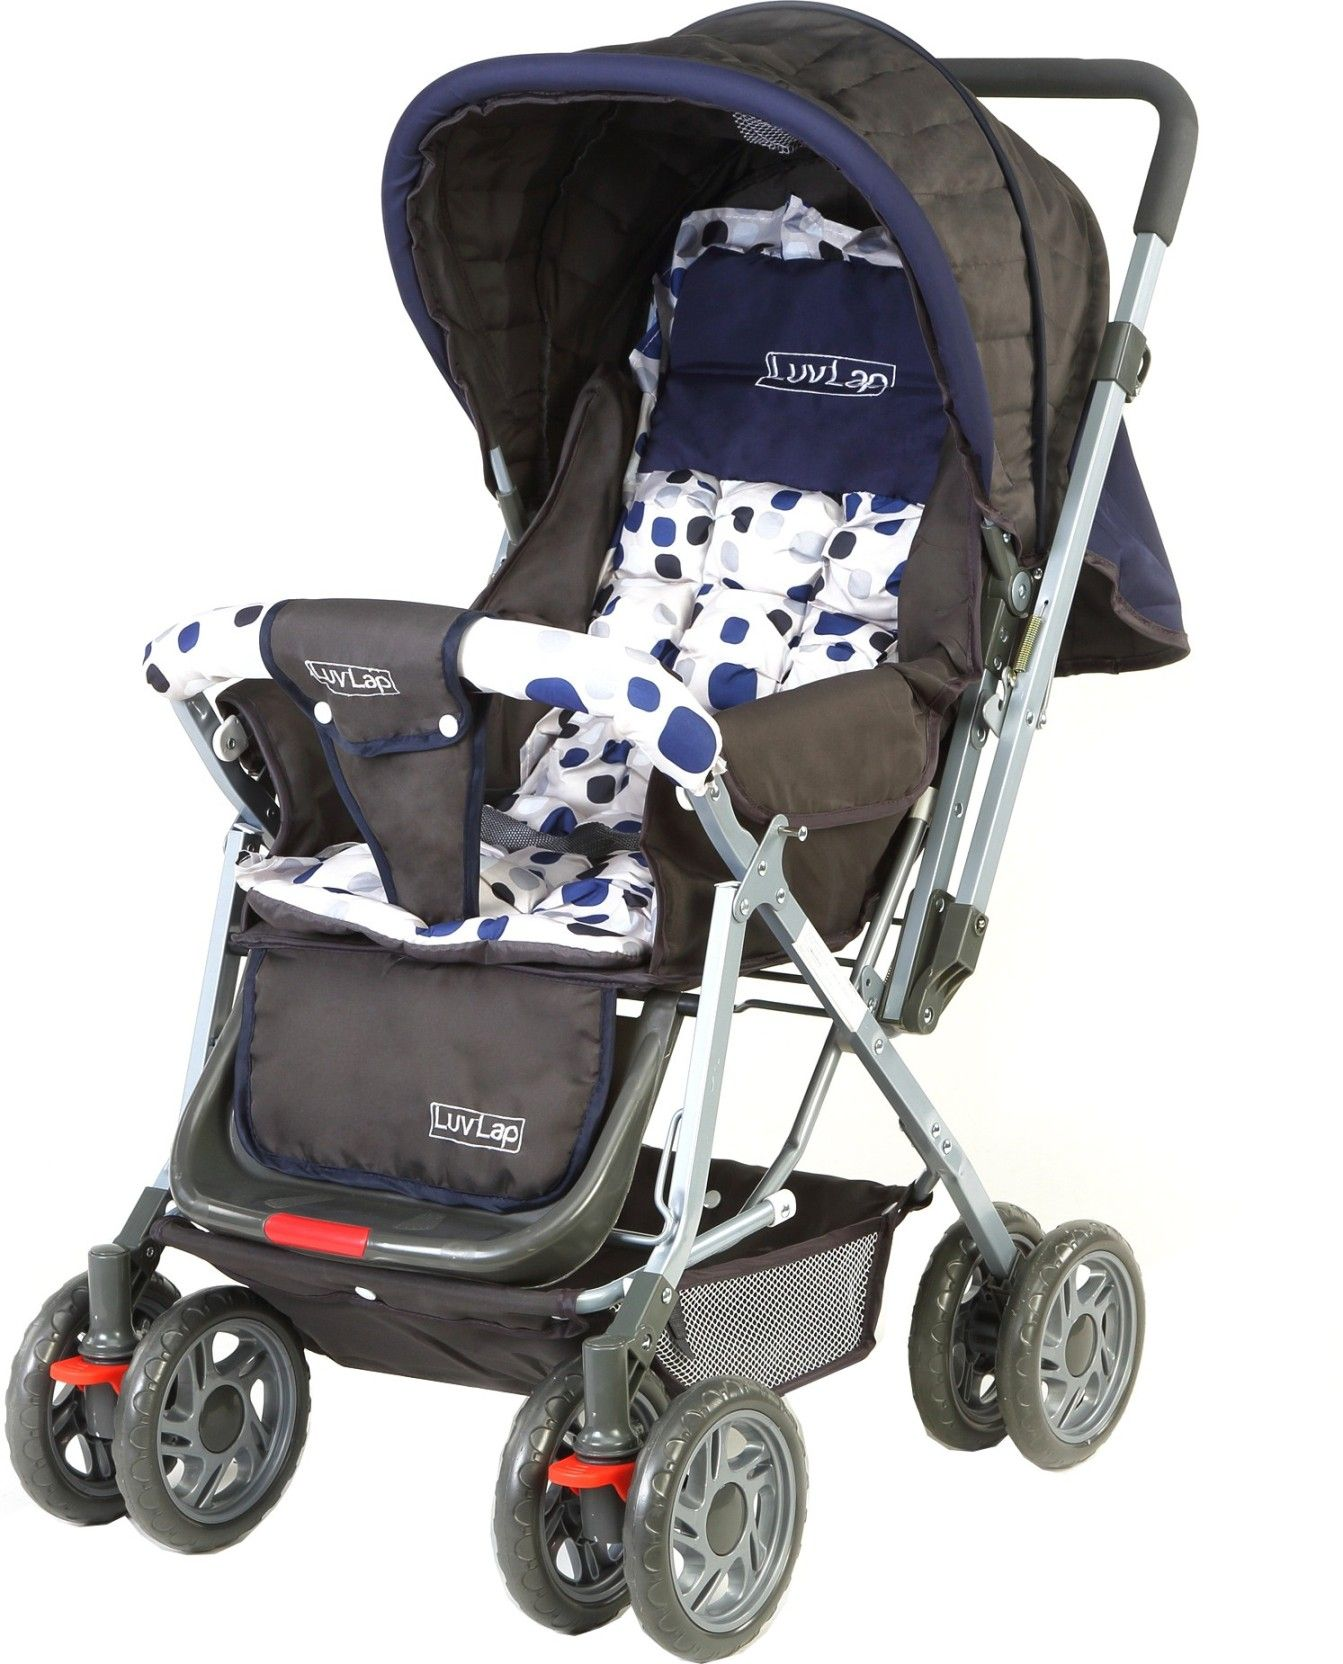 Best Jogging Stroller for your child Baby strollers